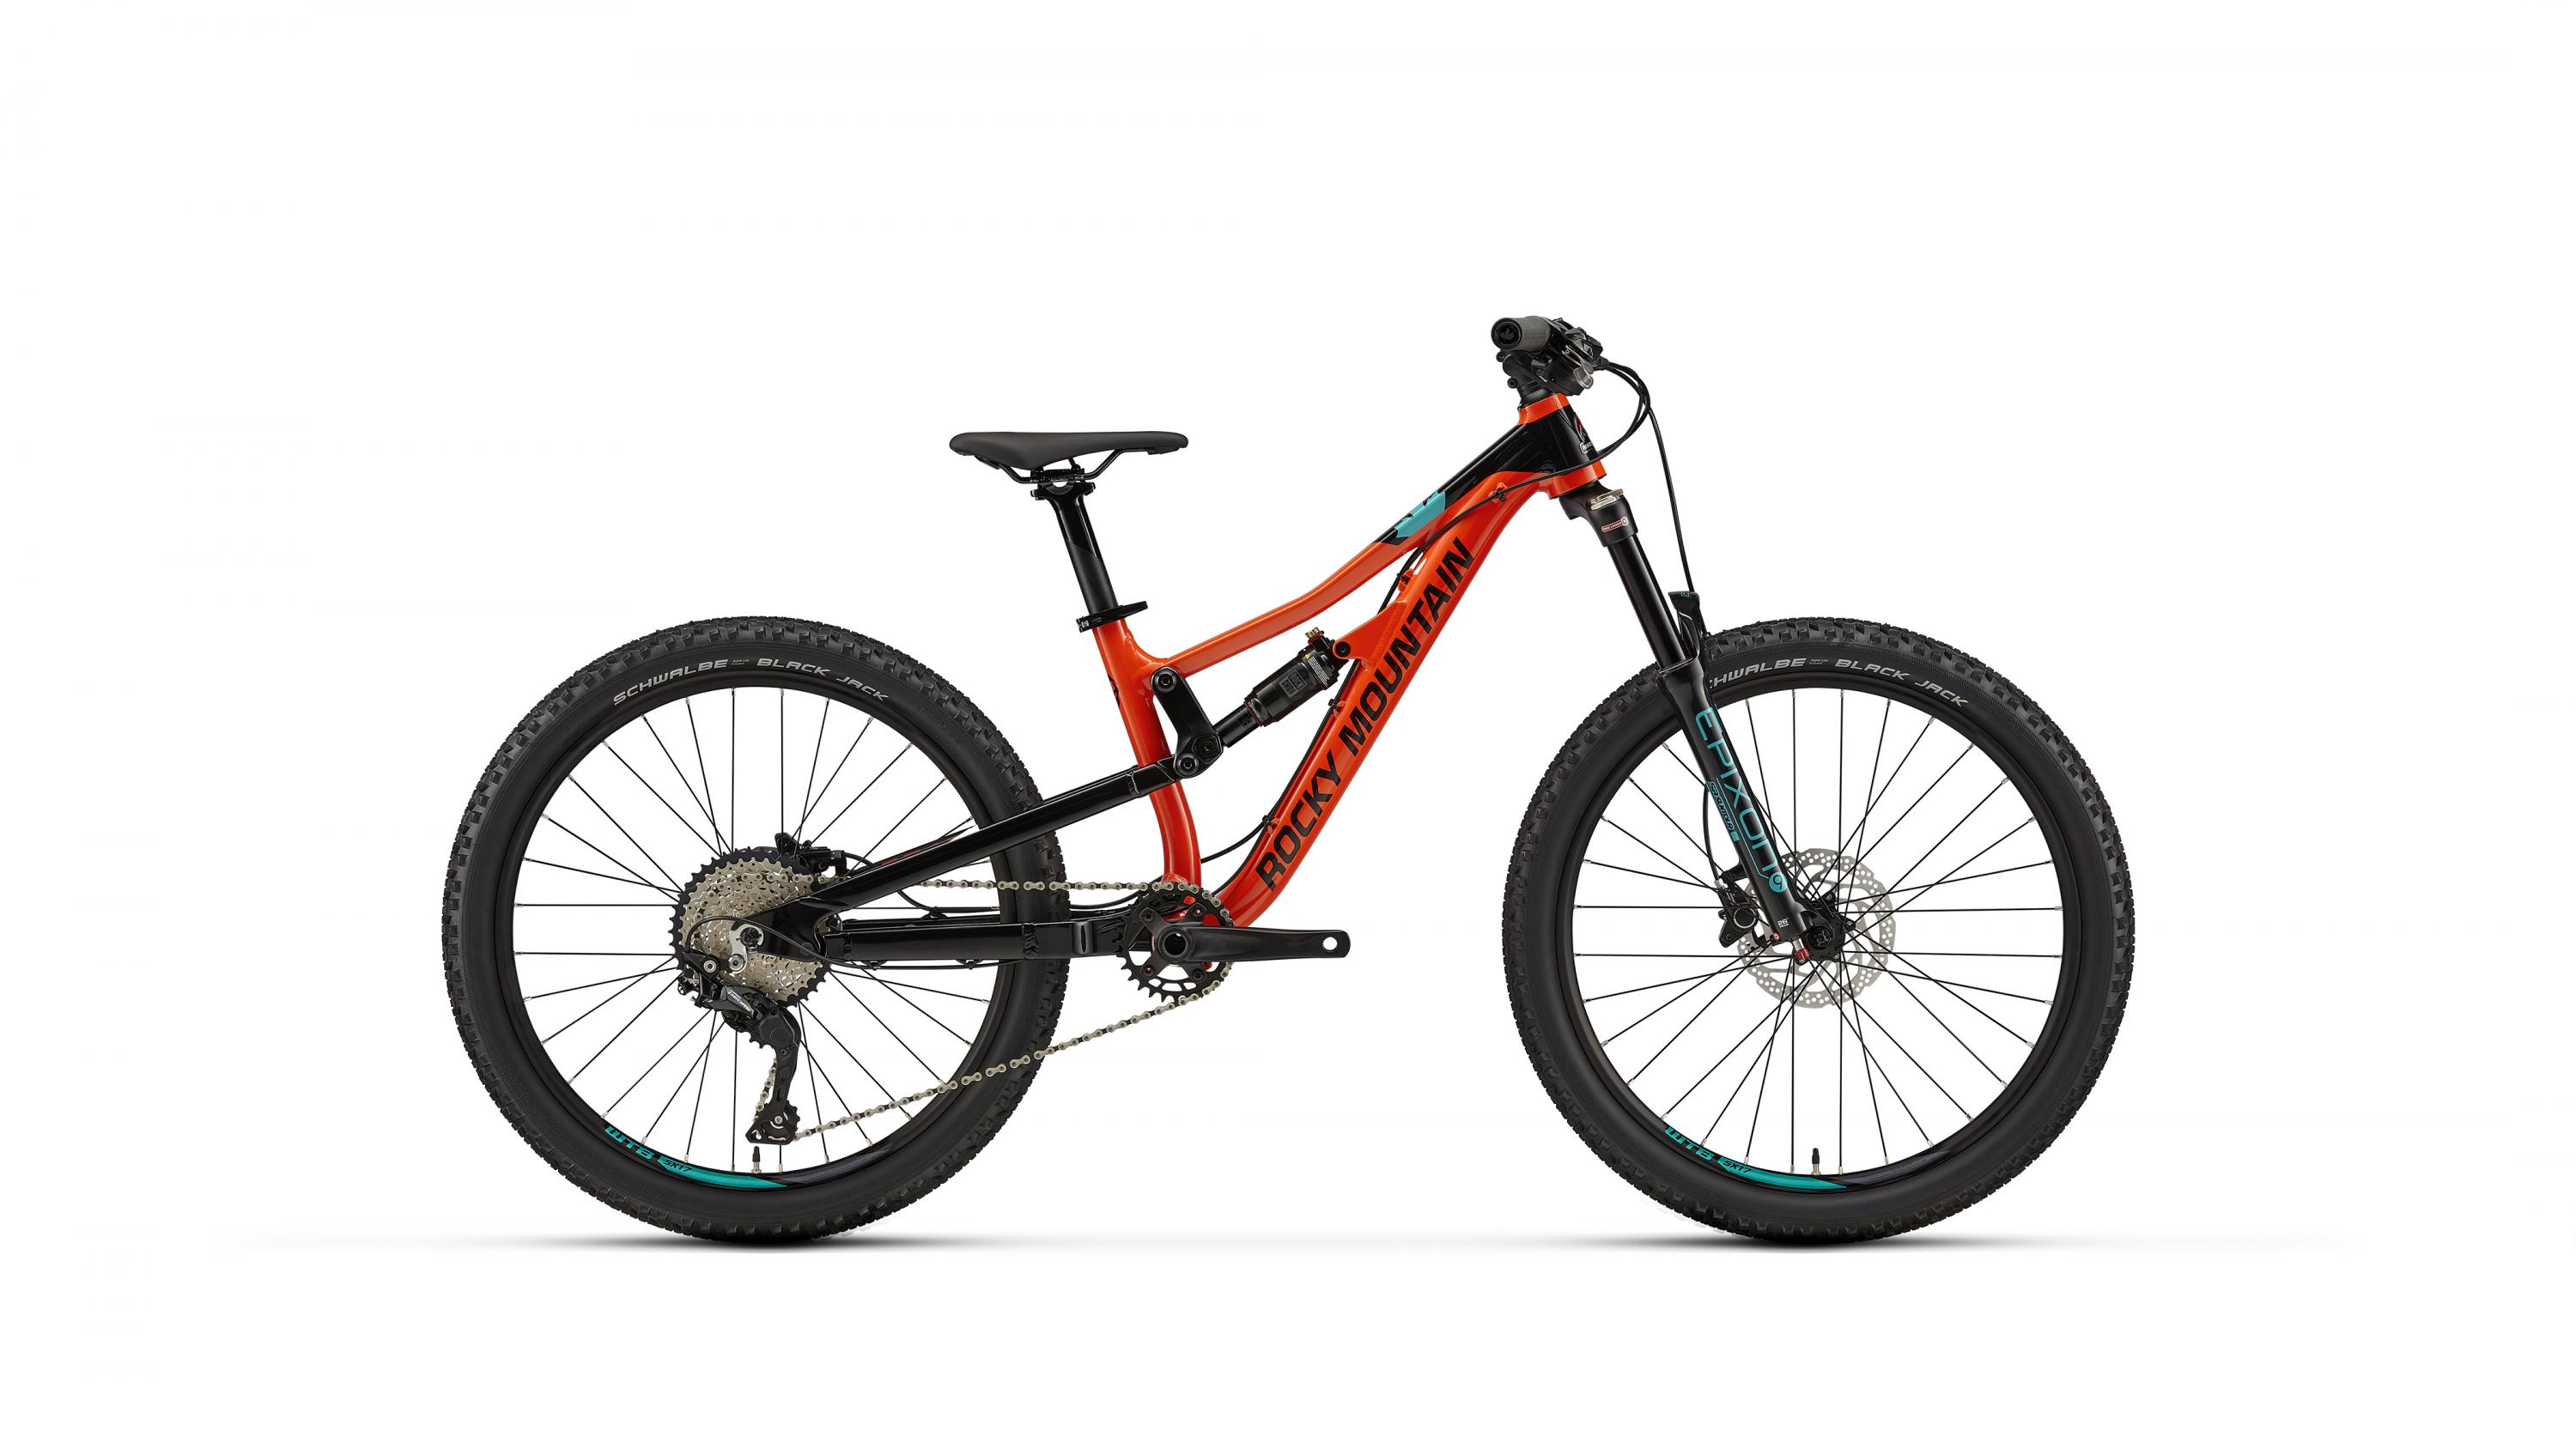 eeea4bff6 The jump to 24 inch wheels opens up longer rides and faster descents!  Starting at age 8 or 9 these bikes make sense for those kids who really  like to shred ...